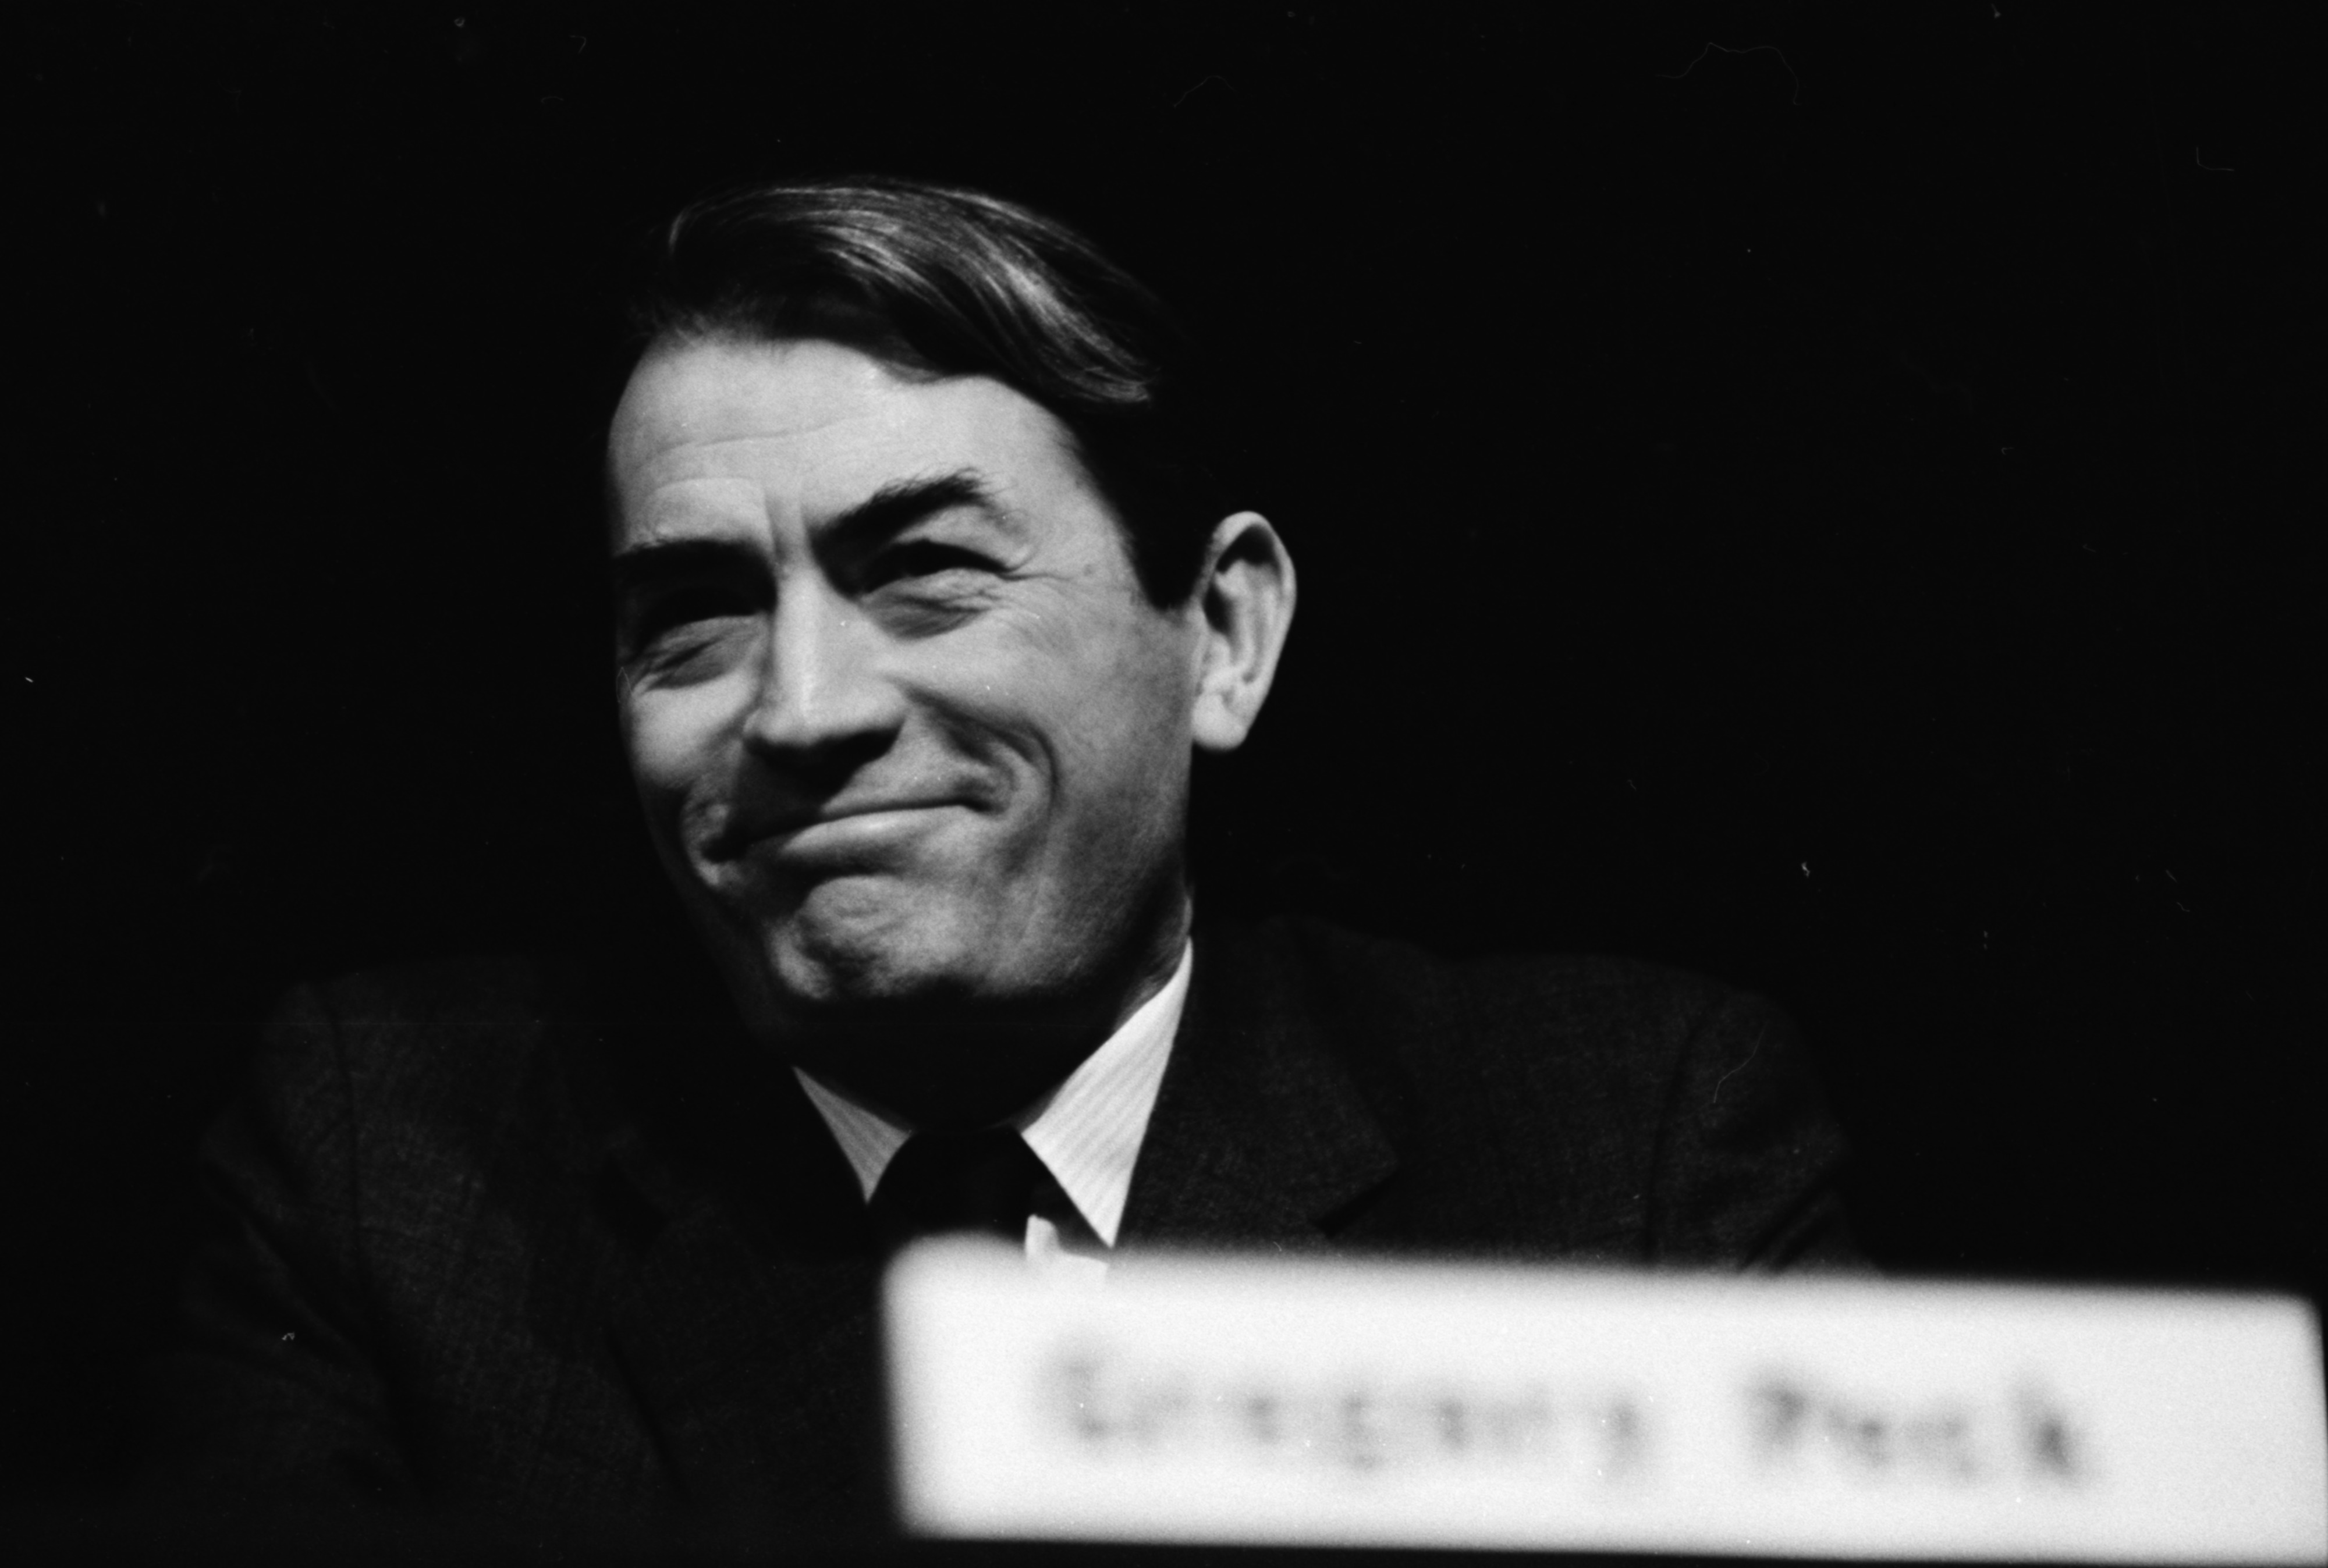 Gregory Peck at the conference on National Council on the Arts image